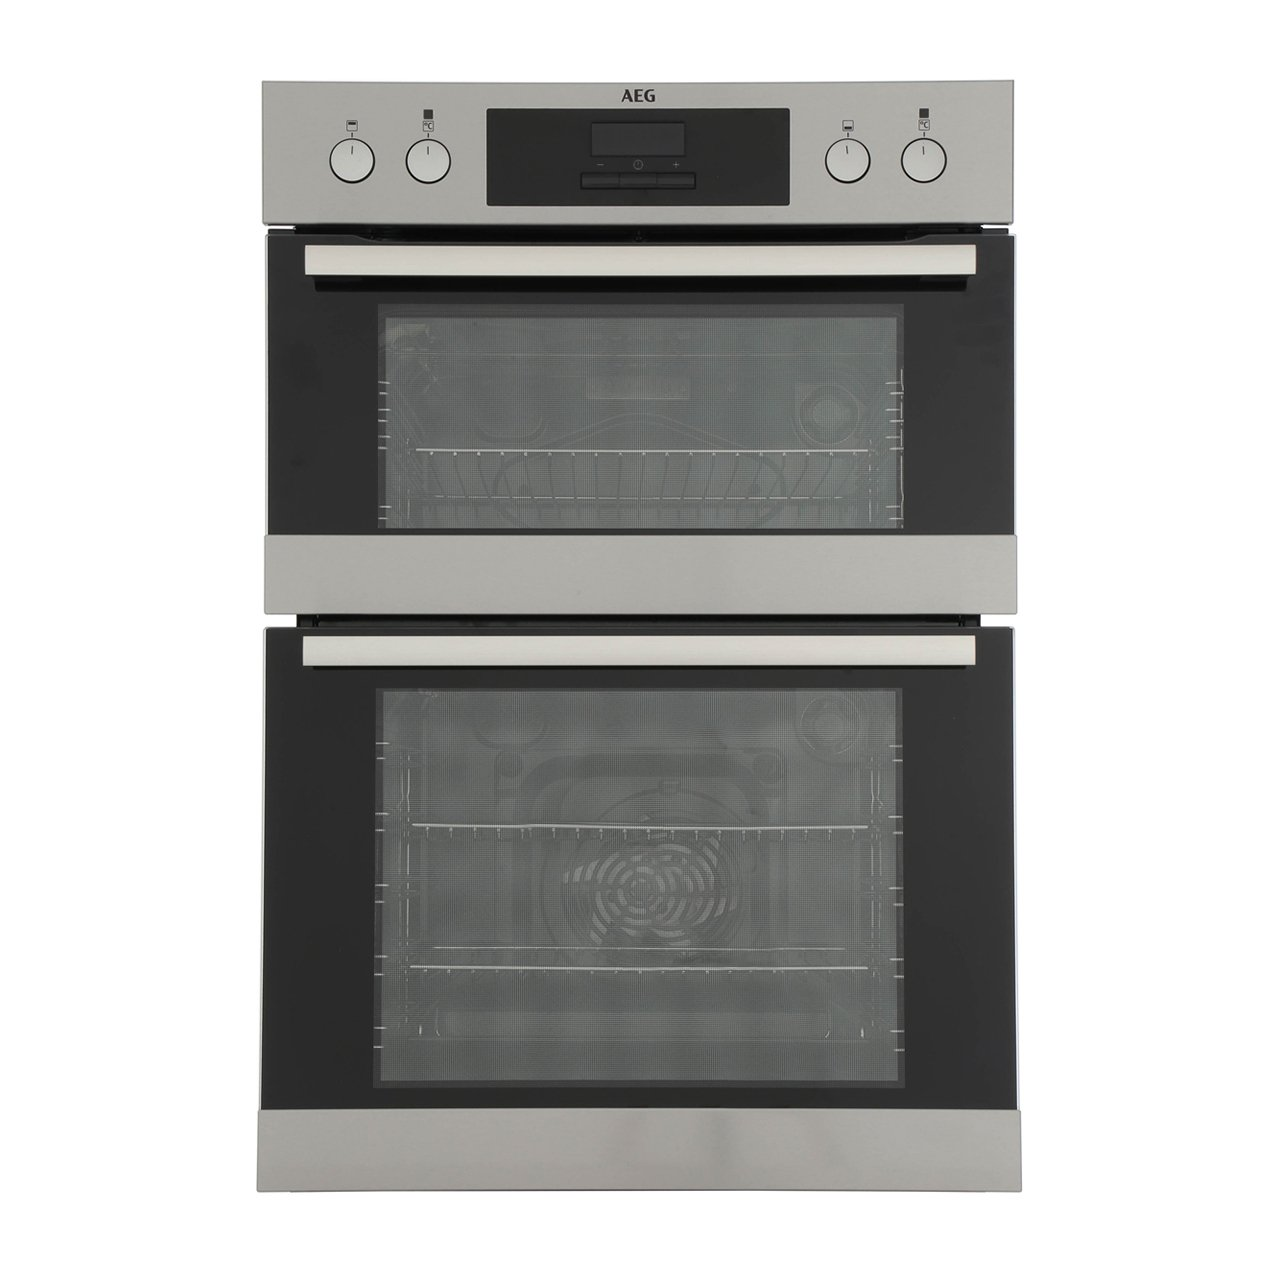 AEG DEB331010M SurroundCook Double Built In Electric Oven